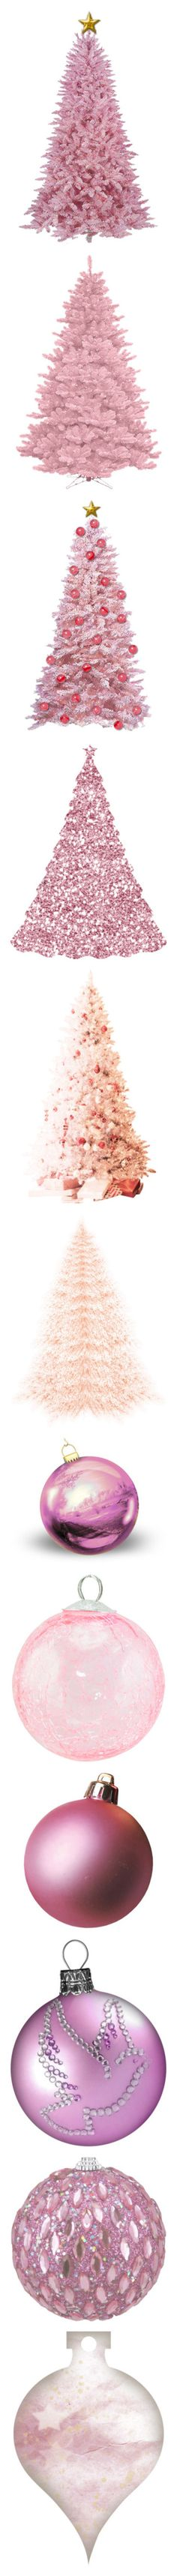 """Dreaming of a Pink Christmas"" by duchessbee ❤ liked on Polyvore featuring christmas, christmas trees, fillers, sparkle, natal, navidad, christmas ornaments, tubes, ornaments and winter"